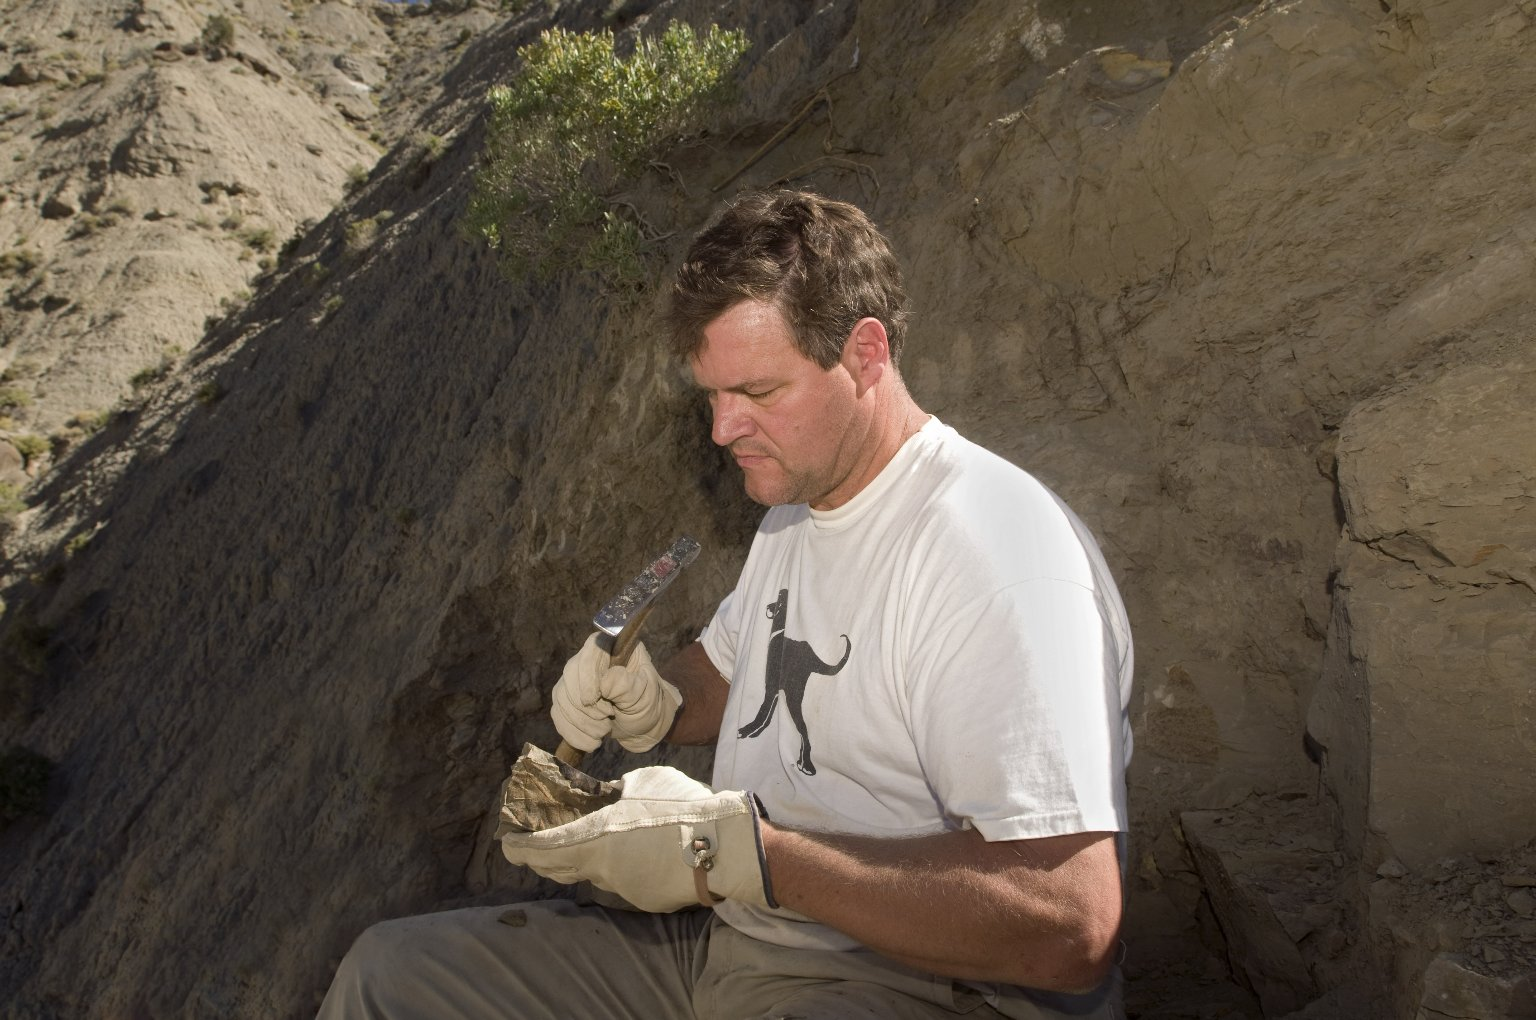 Dr. Kirk Johnson, DMNS Vice President of Research and Collections and Chief Curator, uses a rock hammer to unveil more of a leaf specimen on the Kaiparowits Plateau.